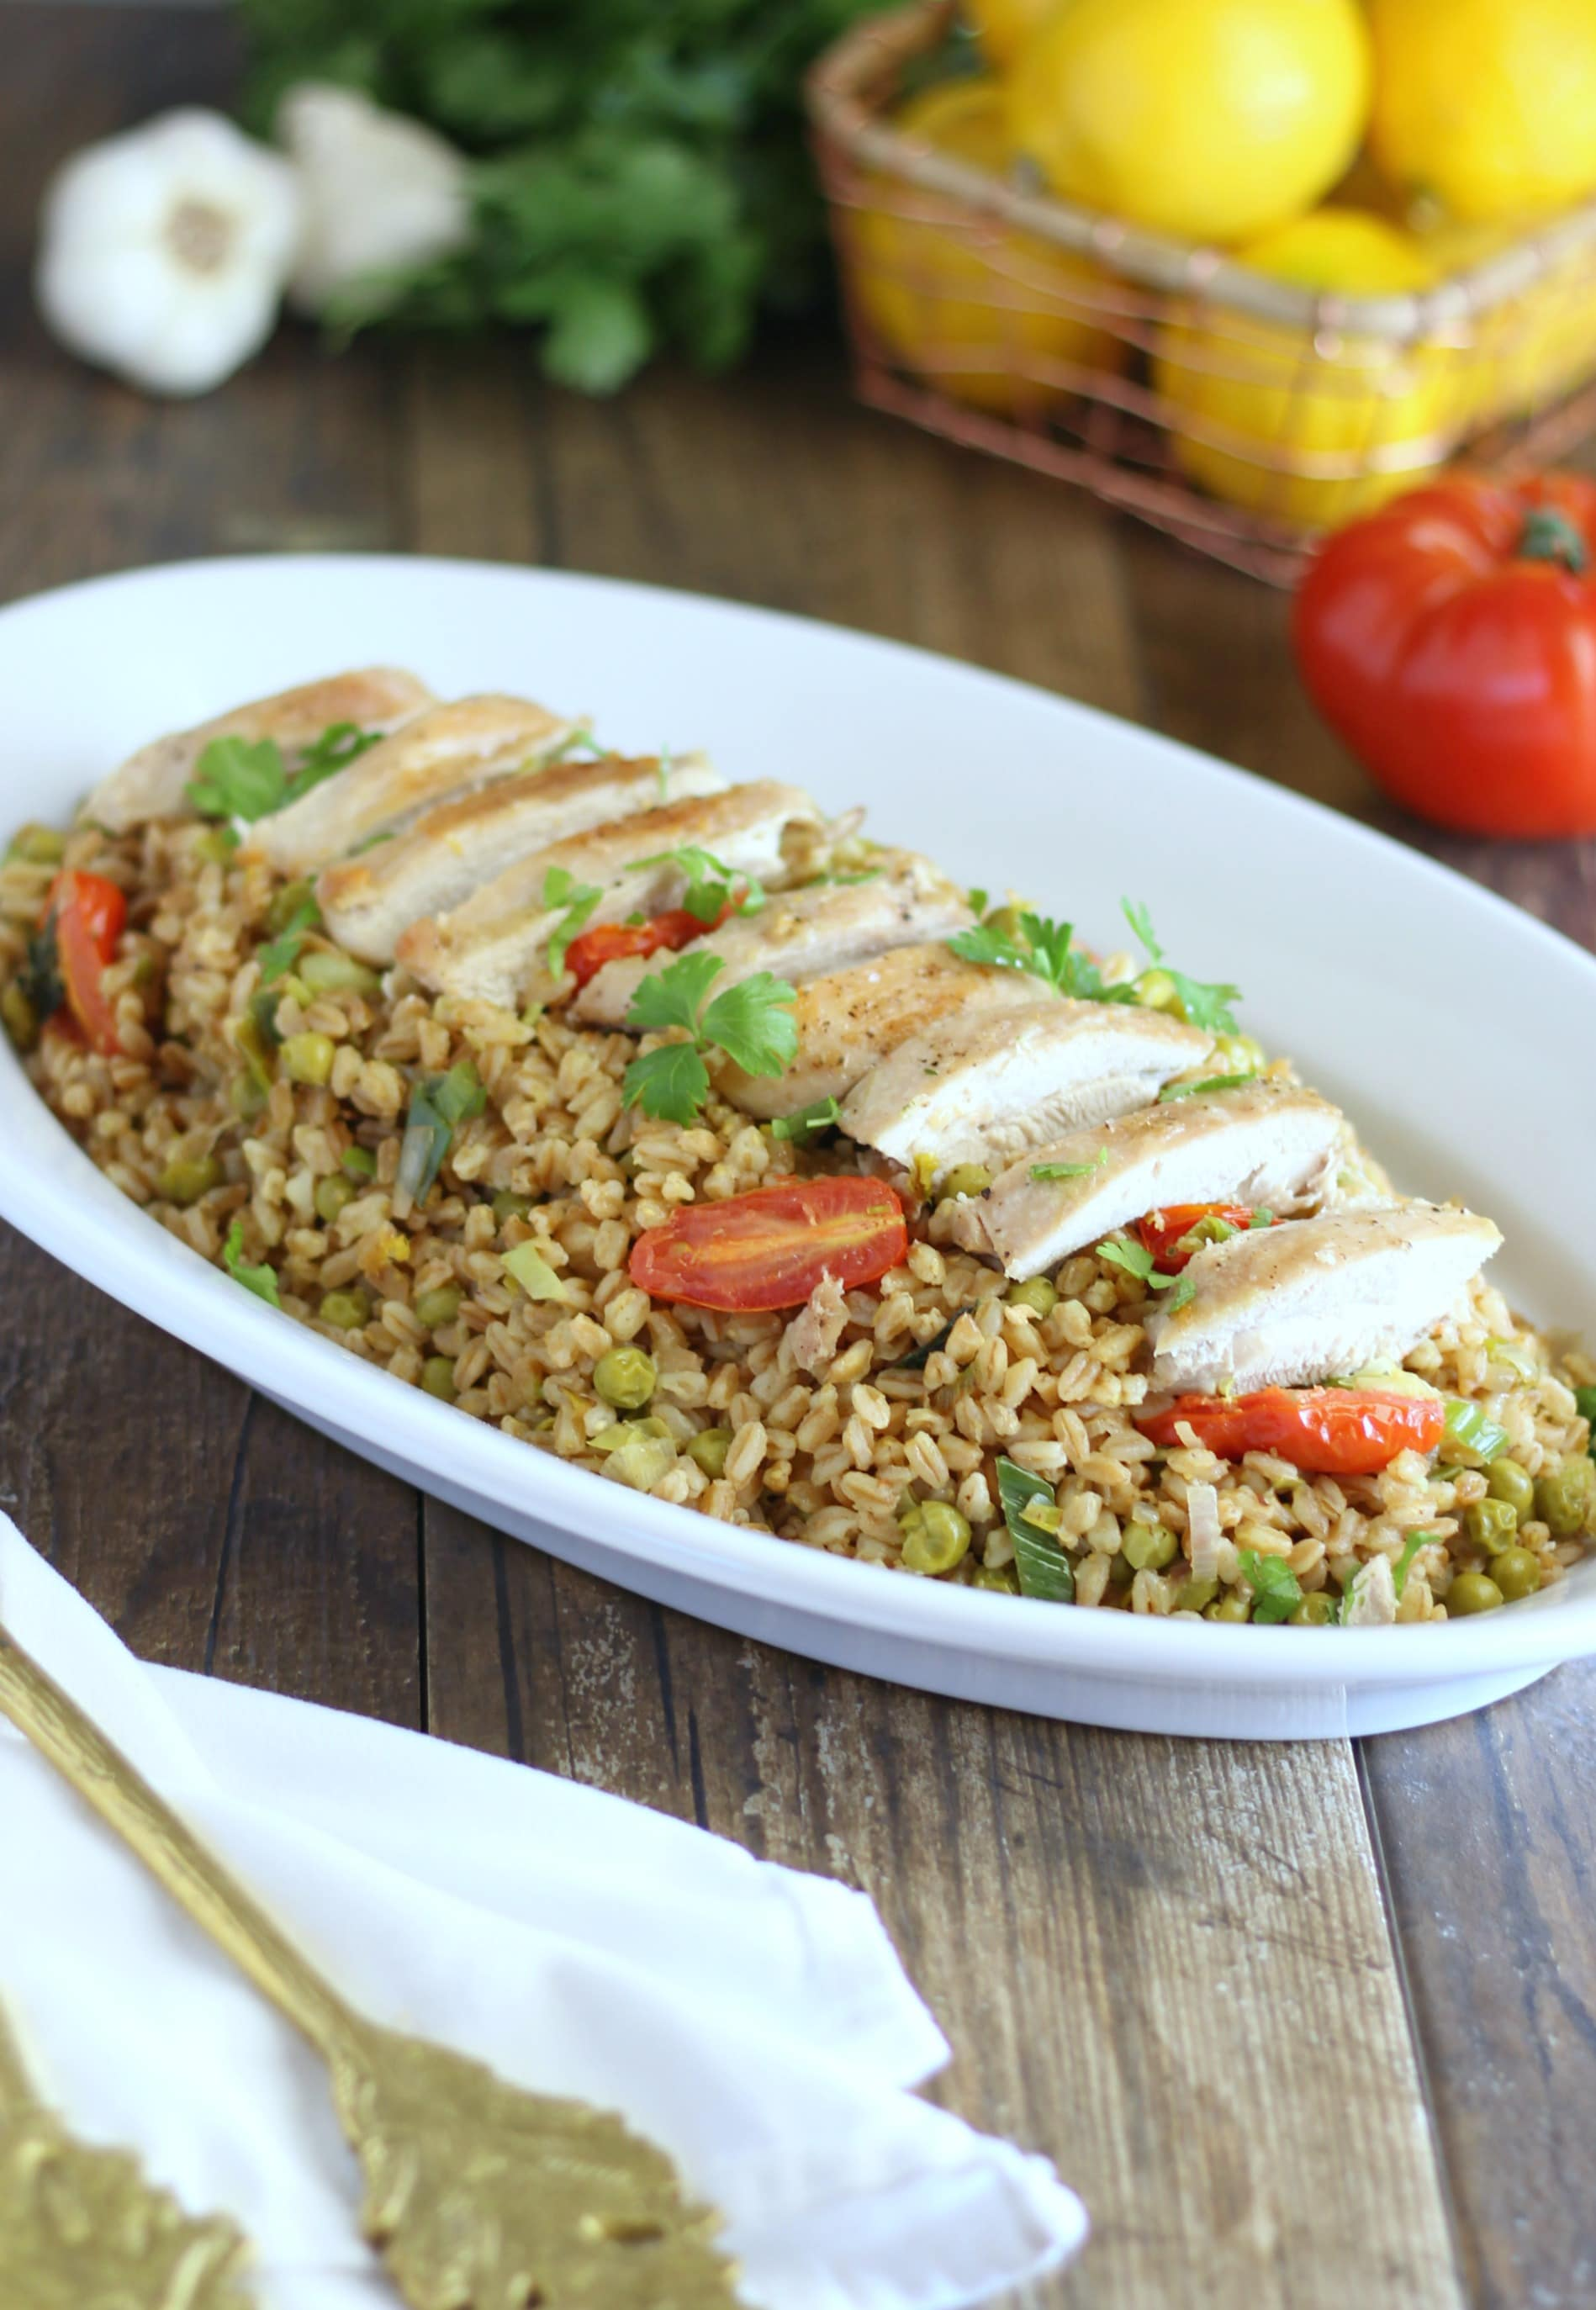 This roasted chicken with farro and fresh spring veggies is a delightful and complete dinner recipe that you can easily prepare for a week night meal.